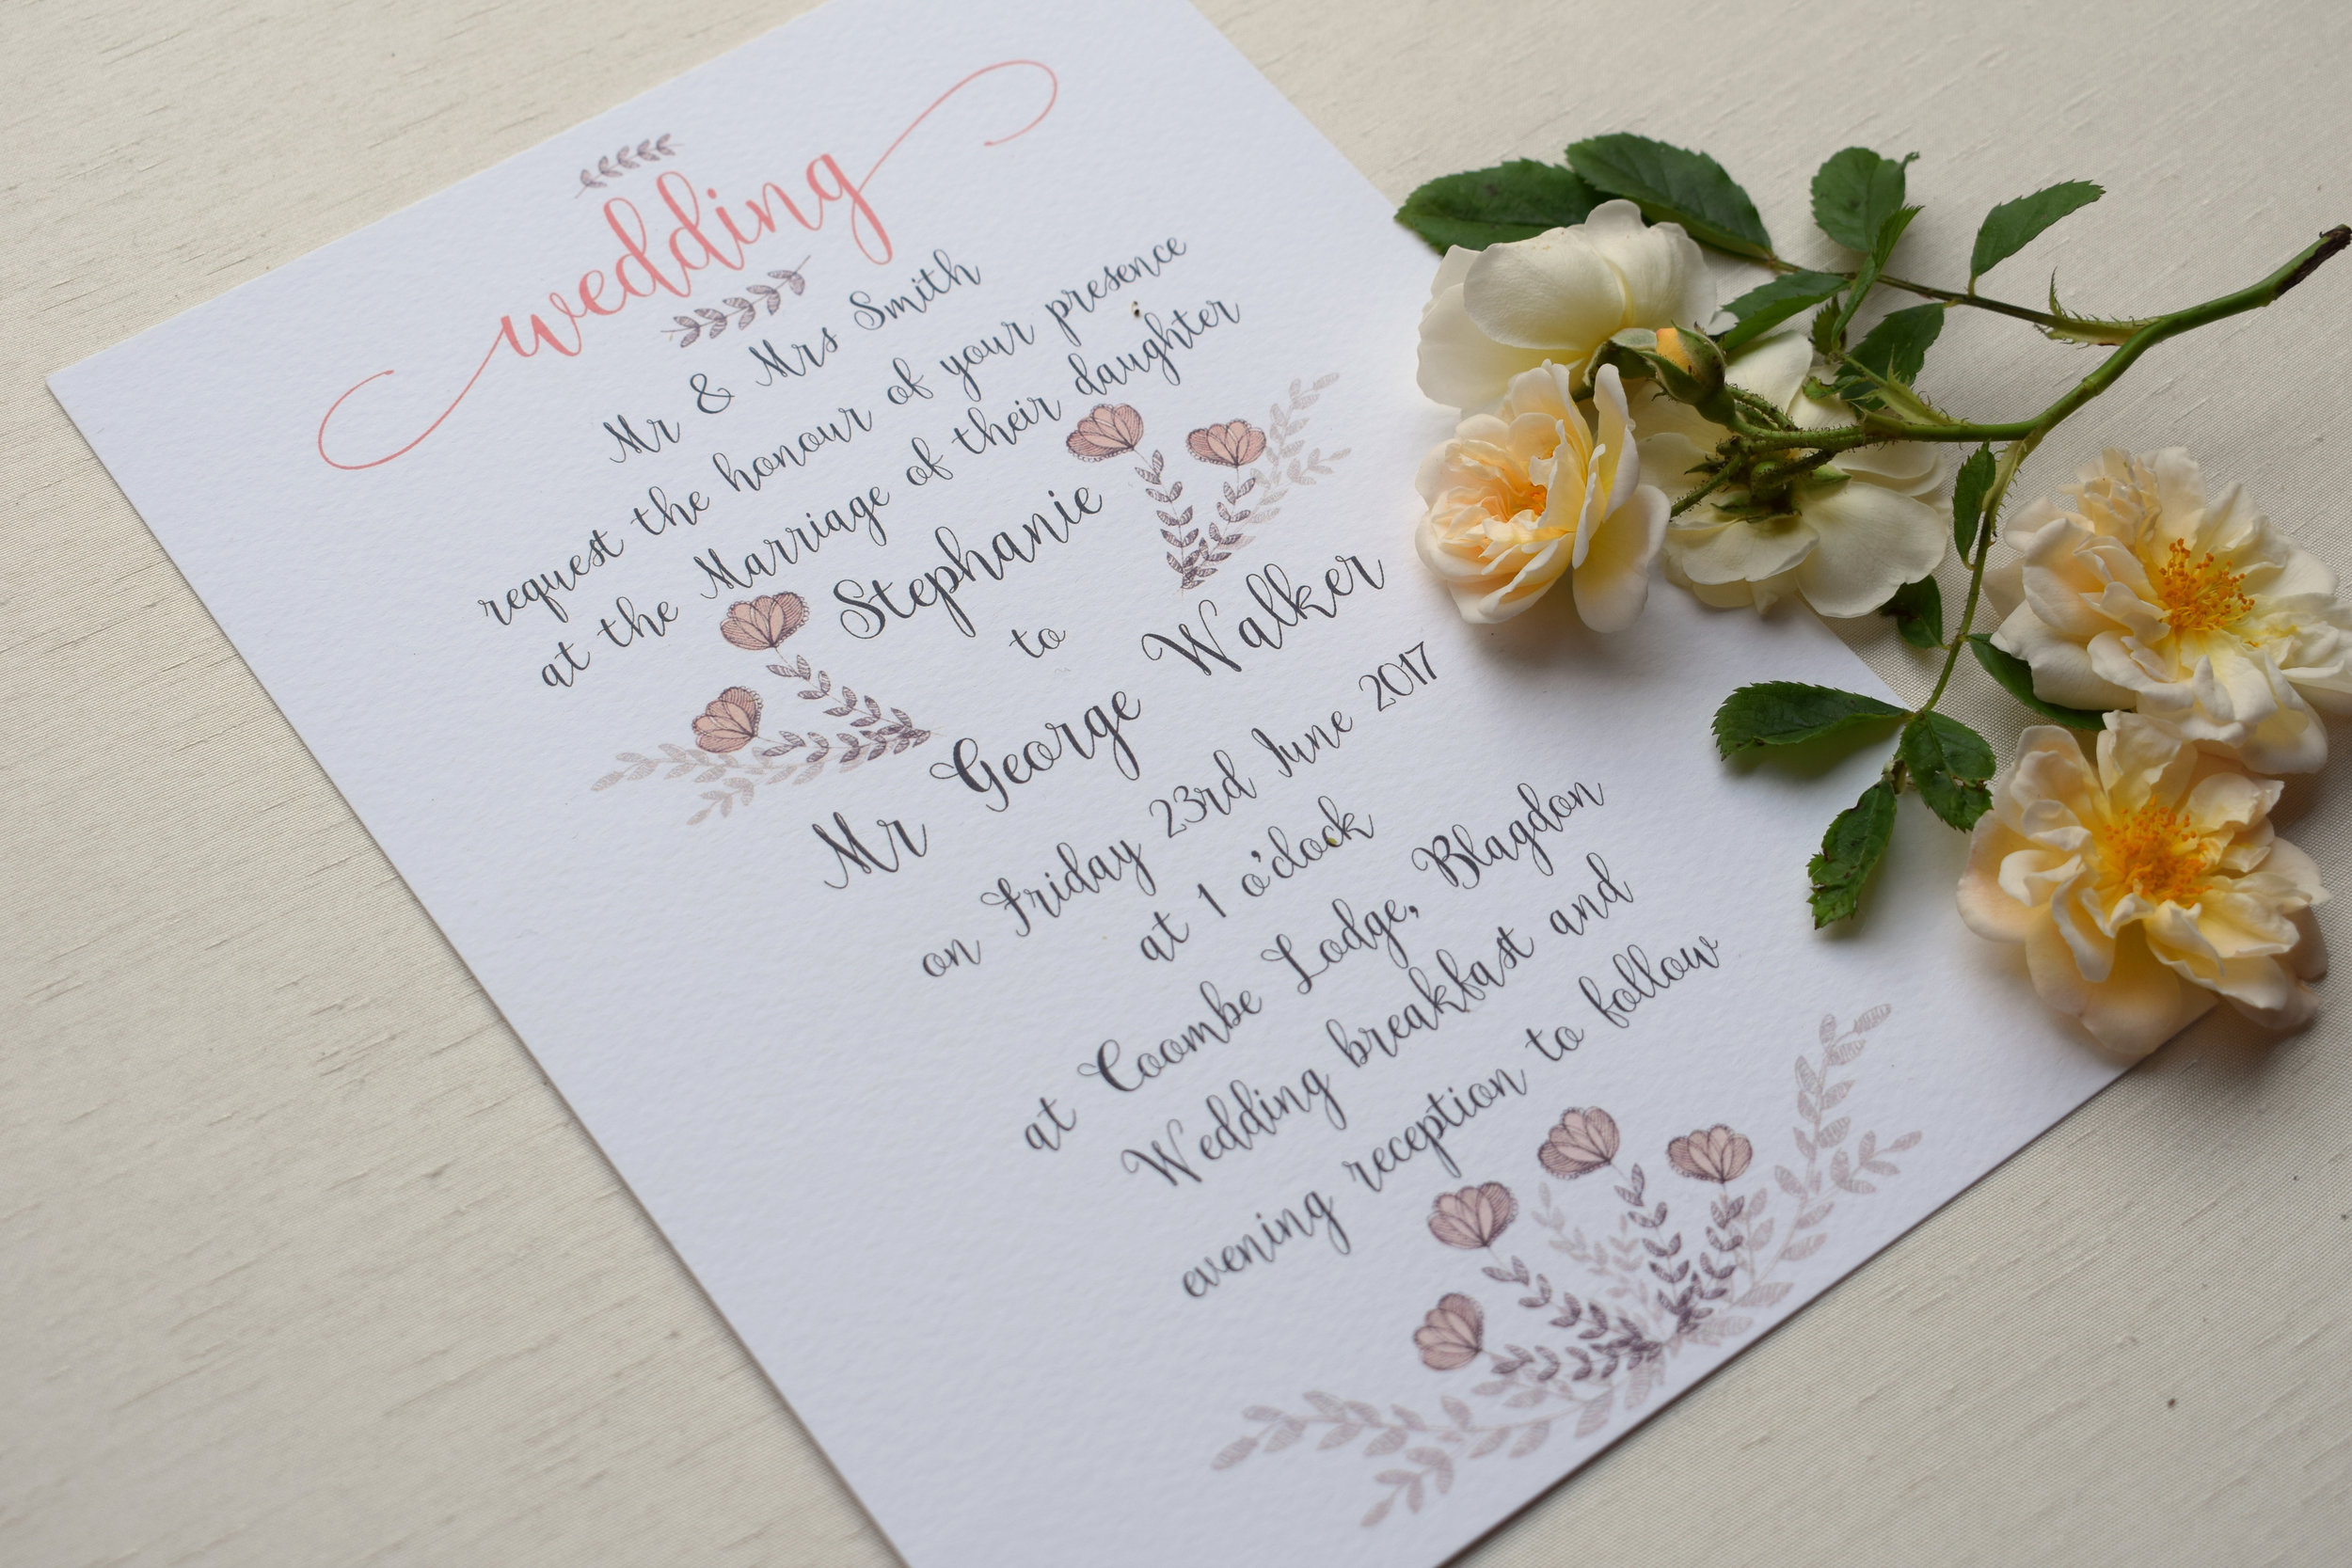 Blossom Wedding Invitation.jpg